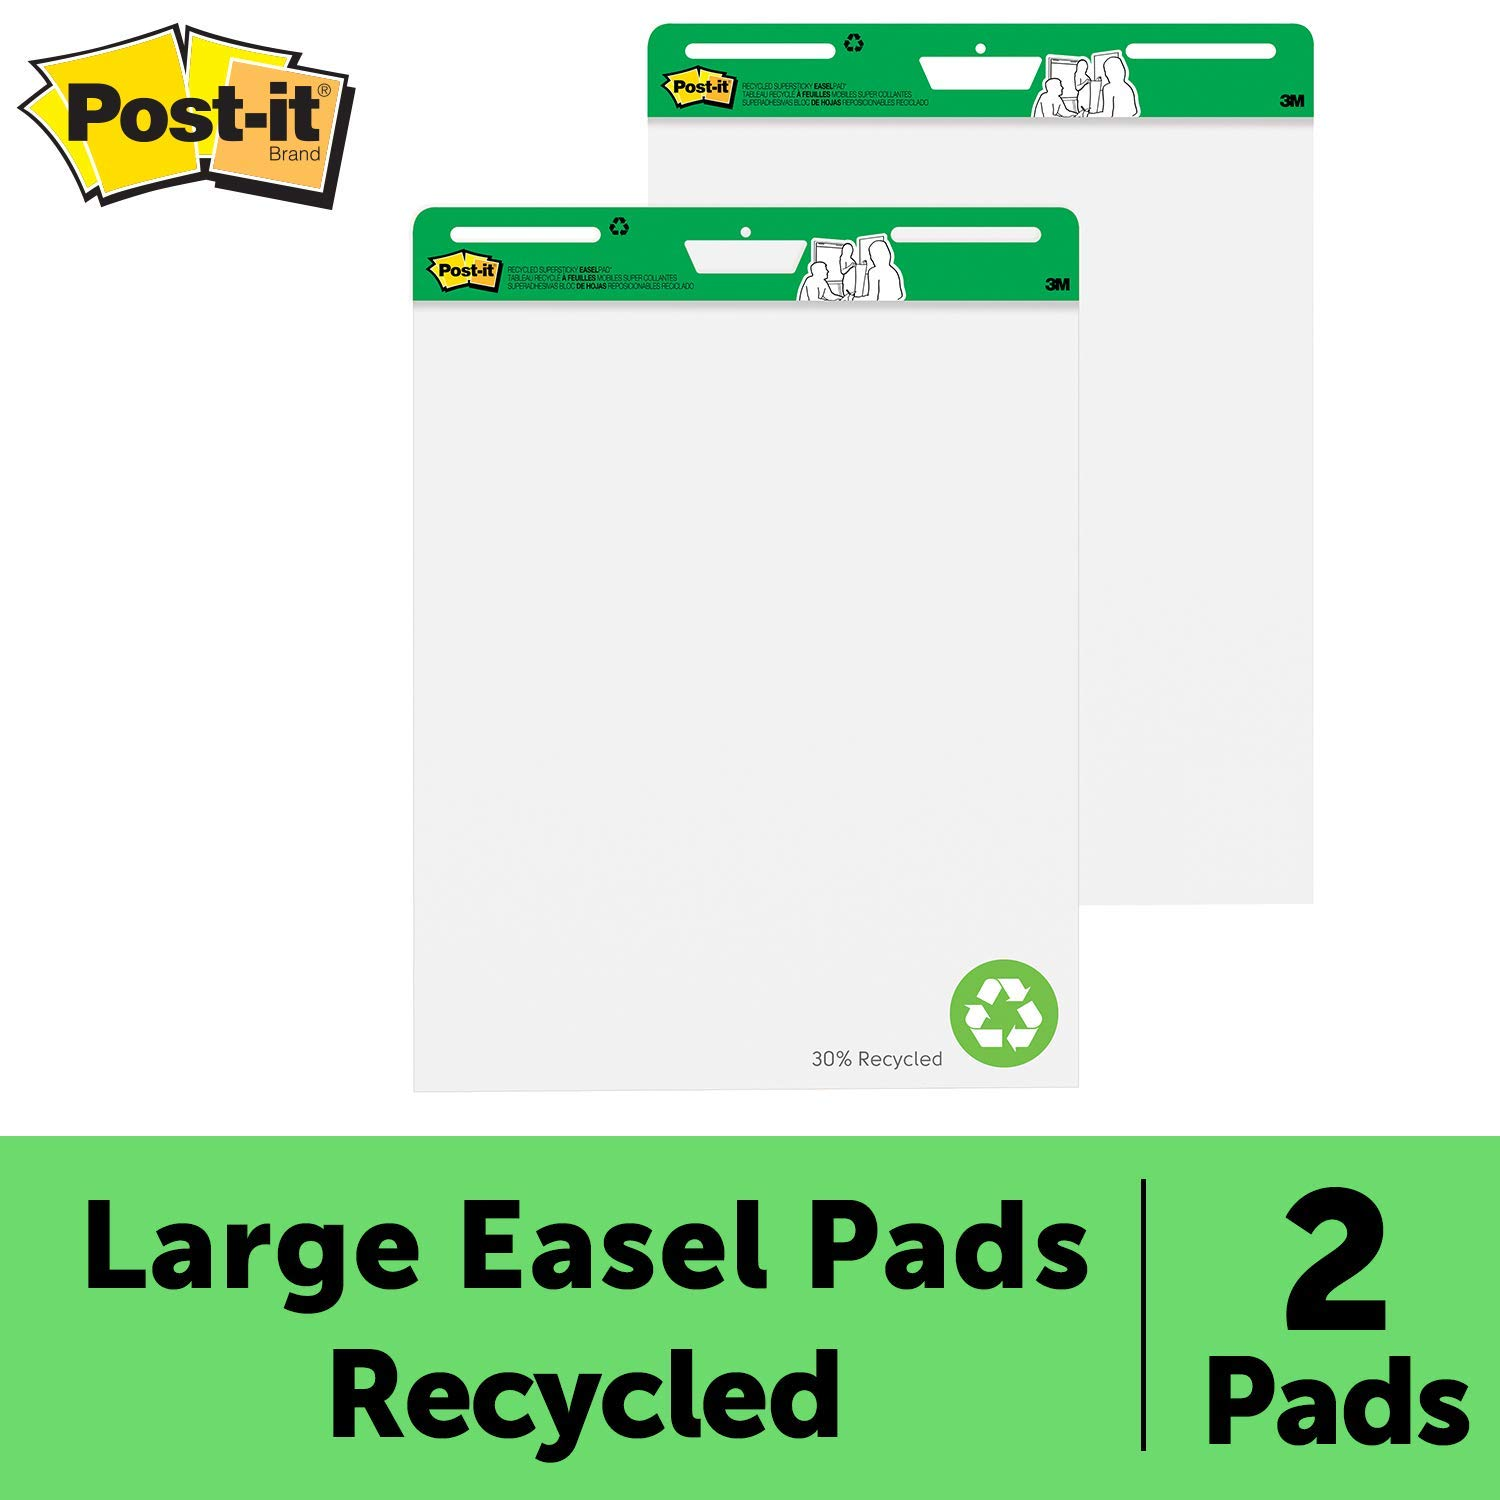 Post-it Super Sticky Easel Pad, 25 x 30 Inches, 30 Sheets/Pad, 2 Pads (559RP), Large White Recycled Premium Self Stick Flip Chart Paper, Super Sticking Power by Post-it